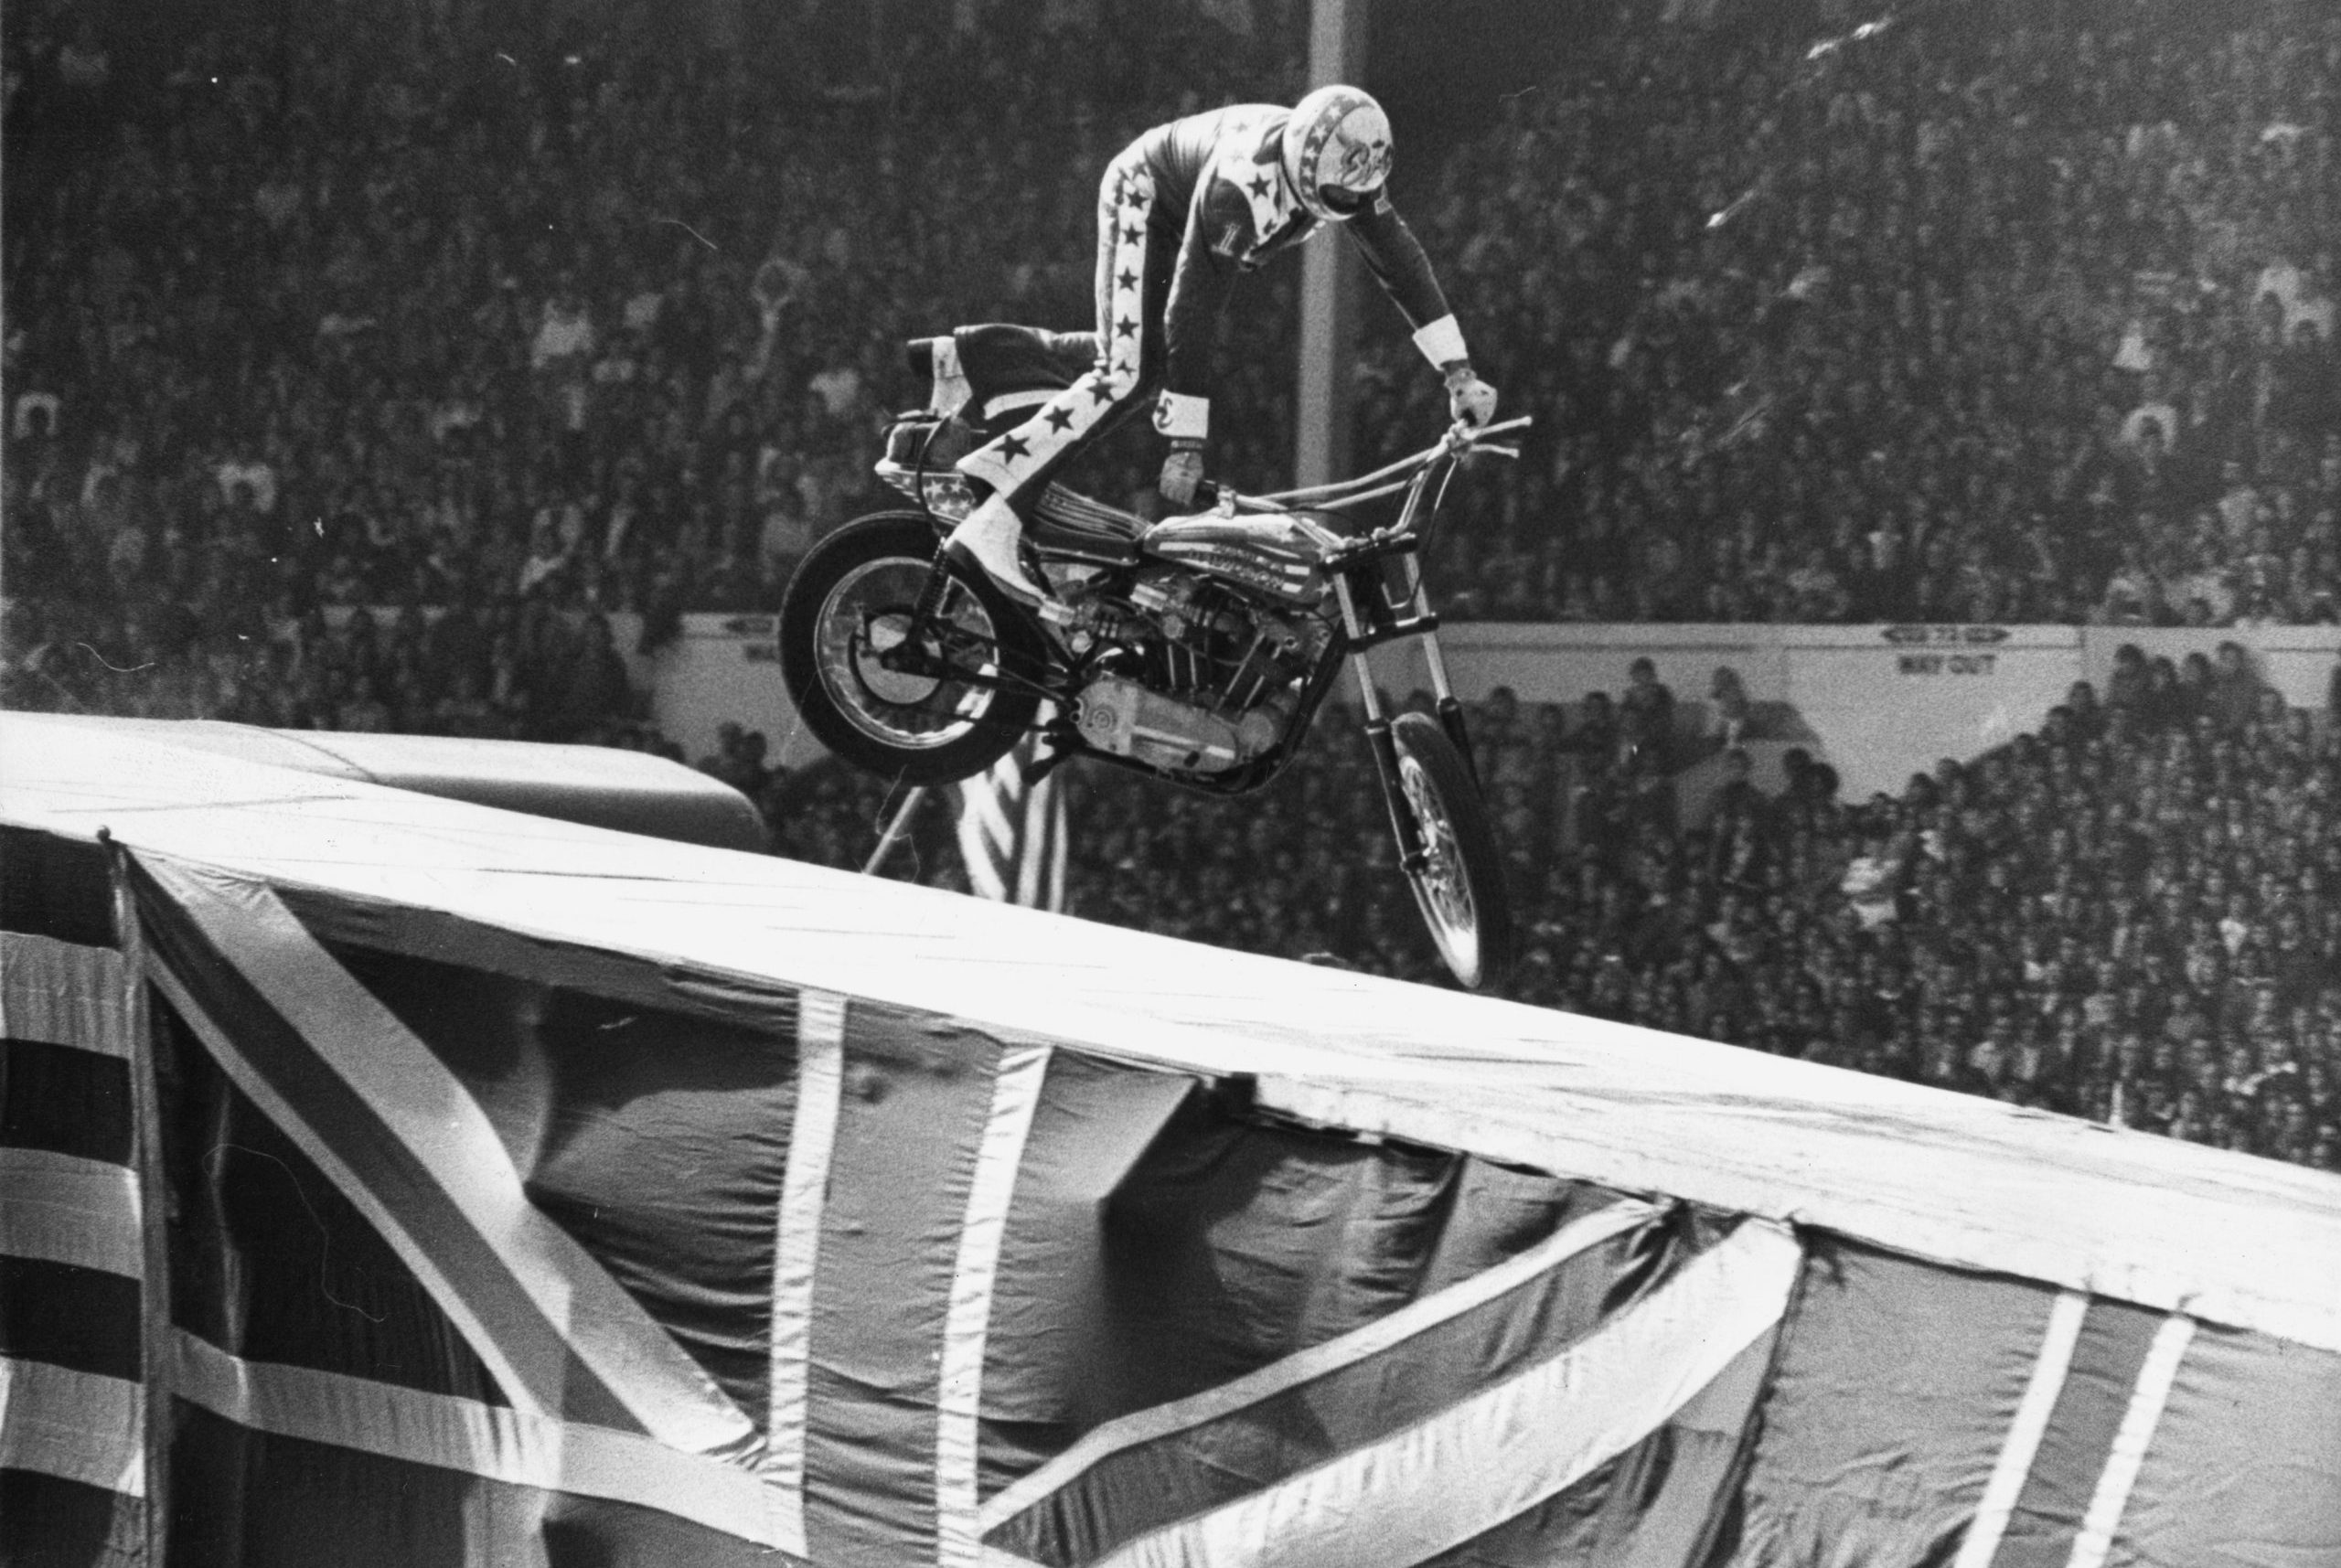 Evel Knievel Landing off his Motorcycle Wembley